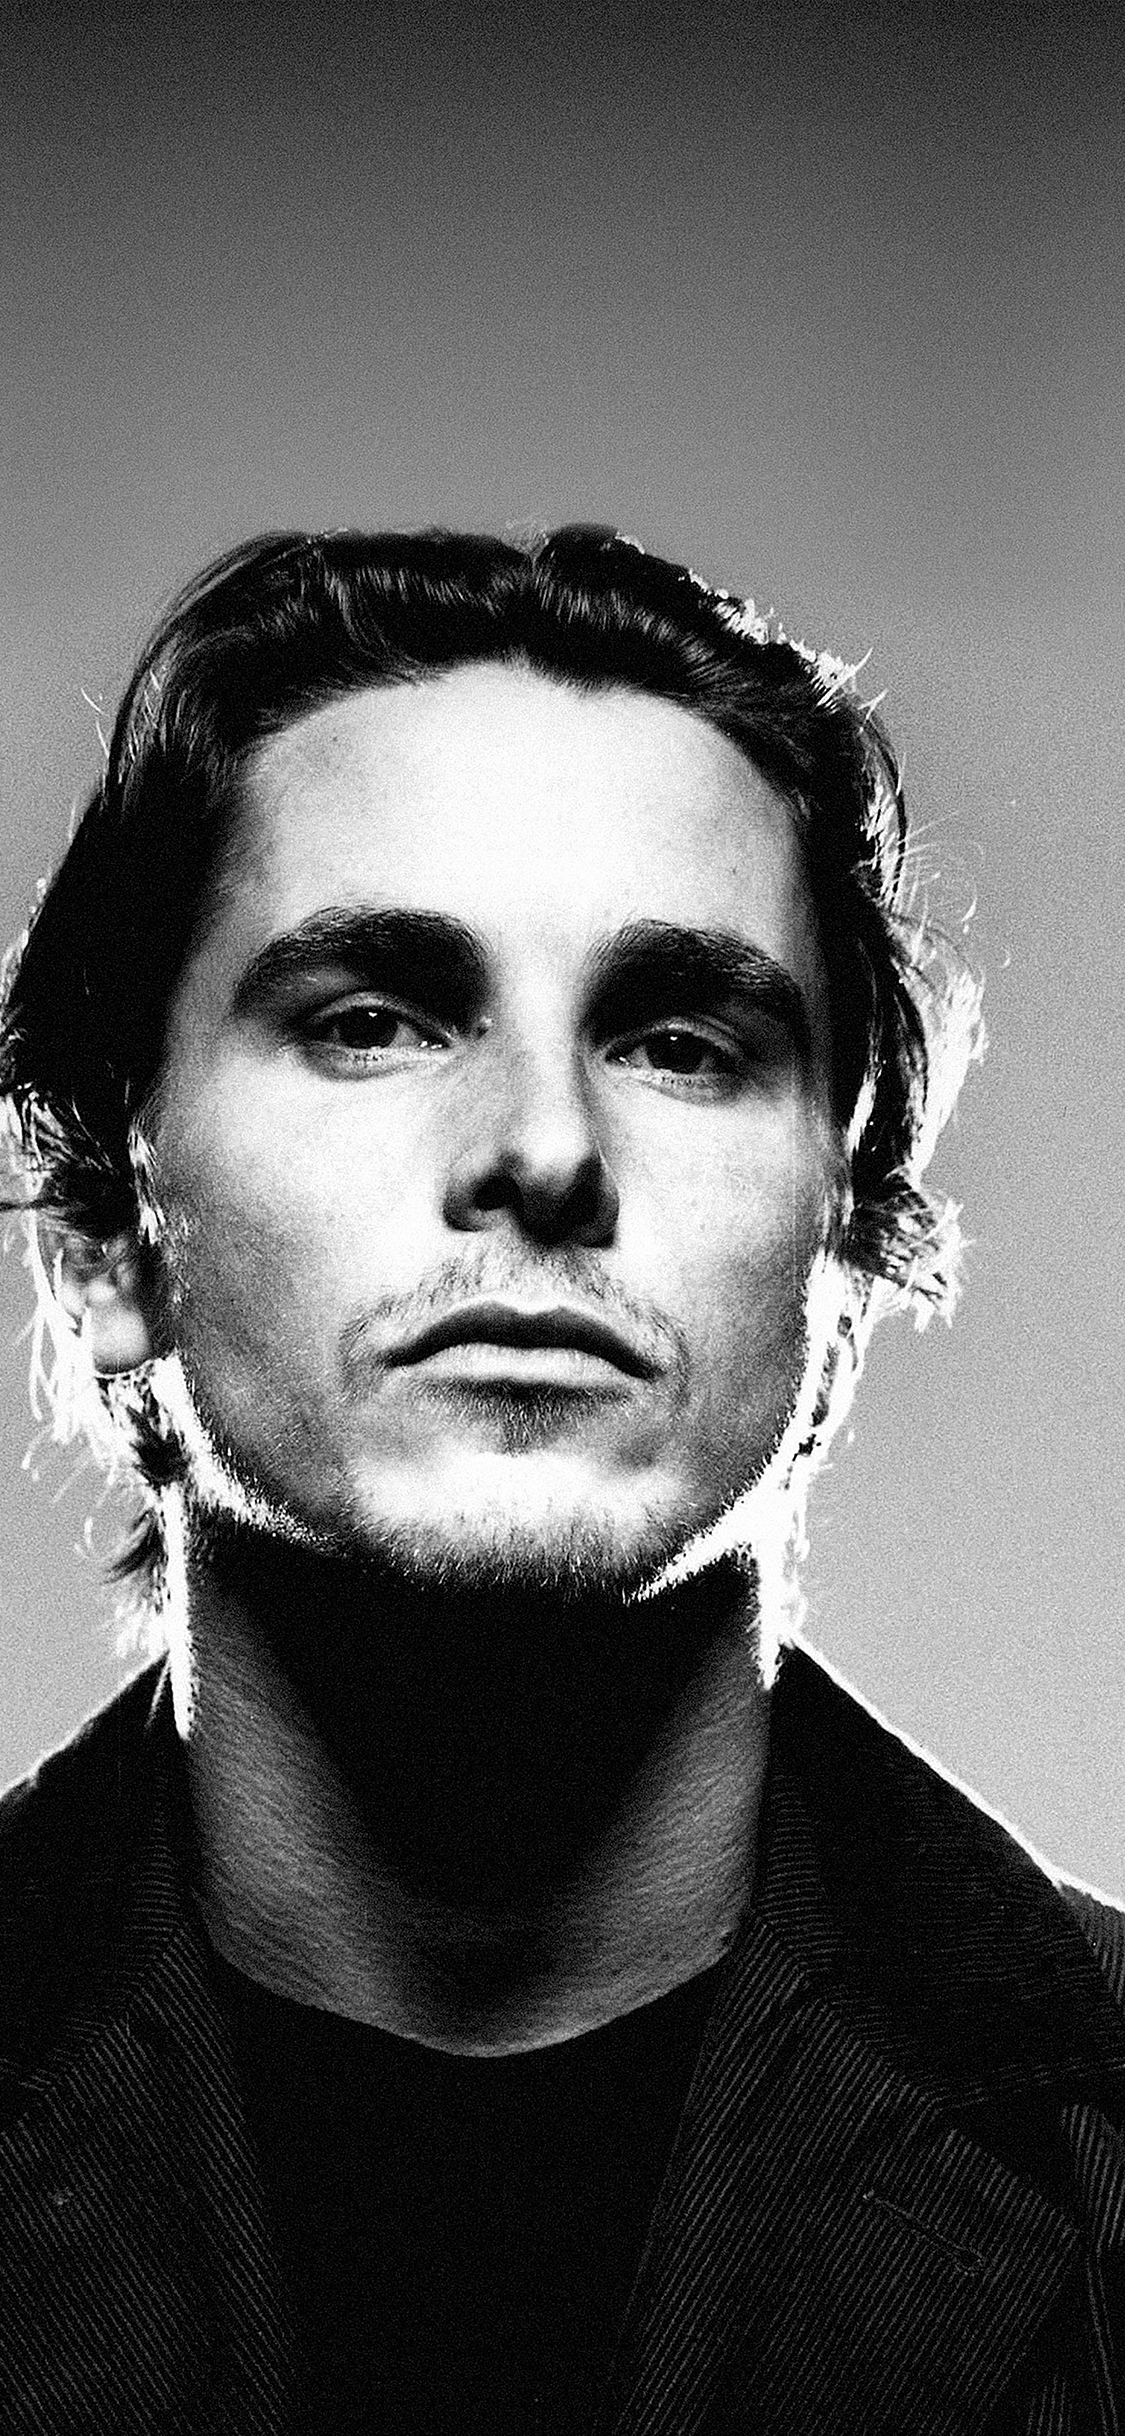 Christian Bale Iphone Wallpaper Ha53 Wallpaper Christian Bale Film Face Papers Co